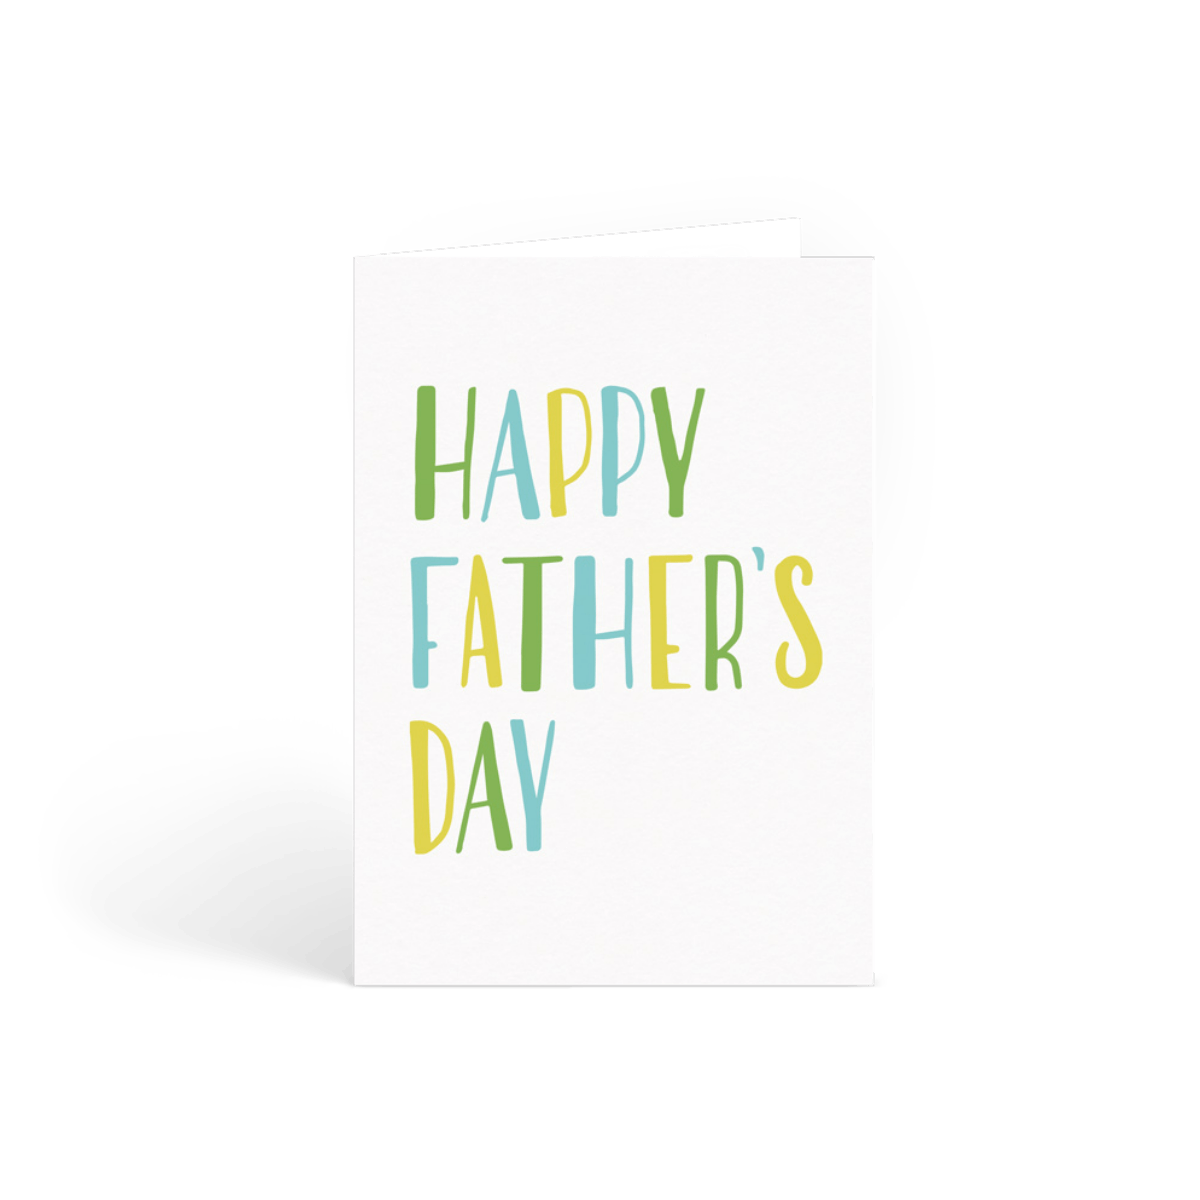 Https%3a%2f%2fwww.papier.com%2fproduct image%2f17927%2f2%2fhappy father s day 4676 front 1486650487.png?ixlib=rb 1.1